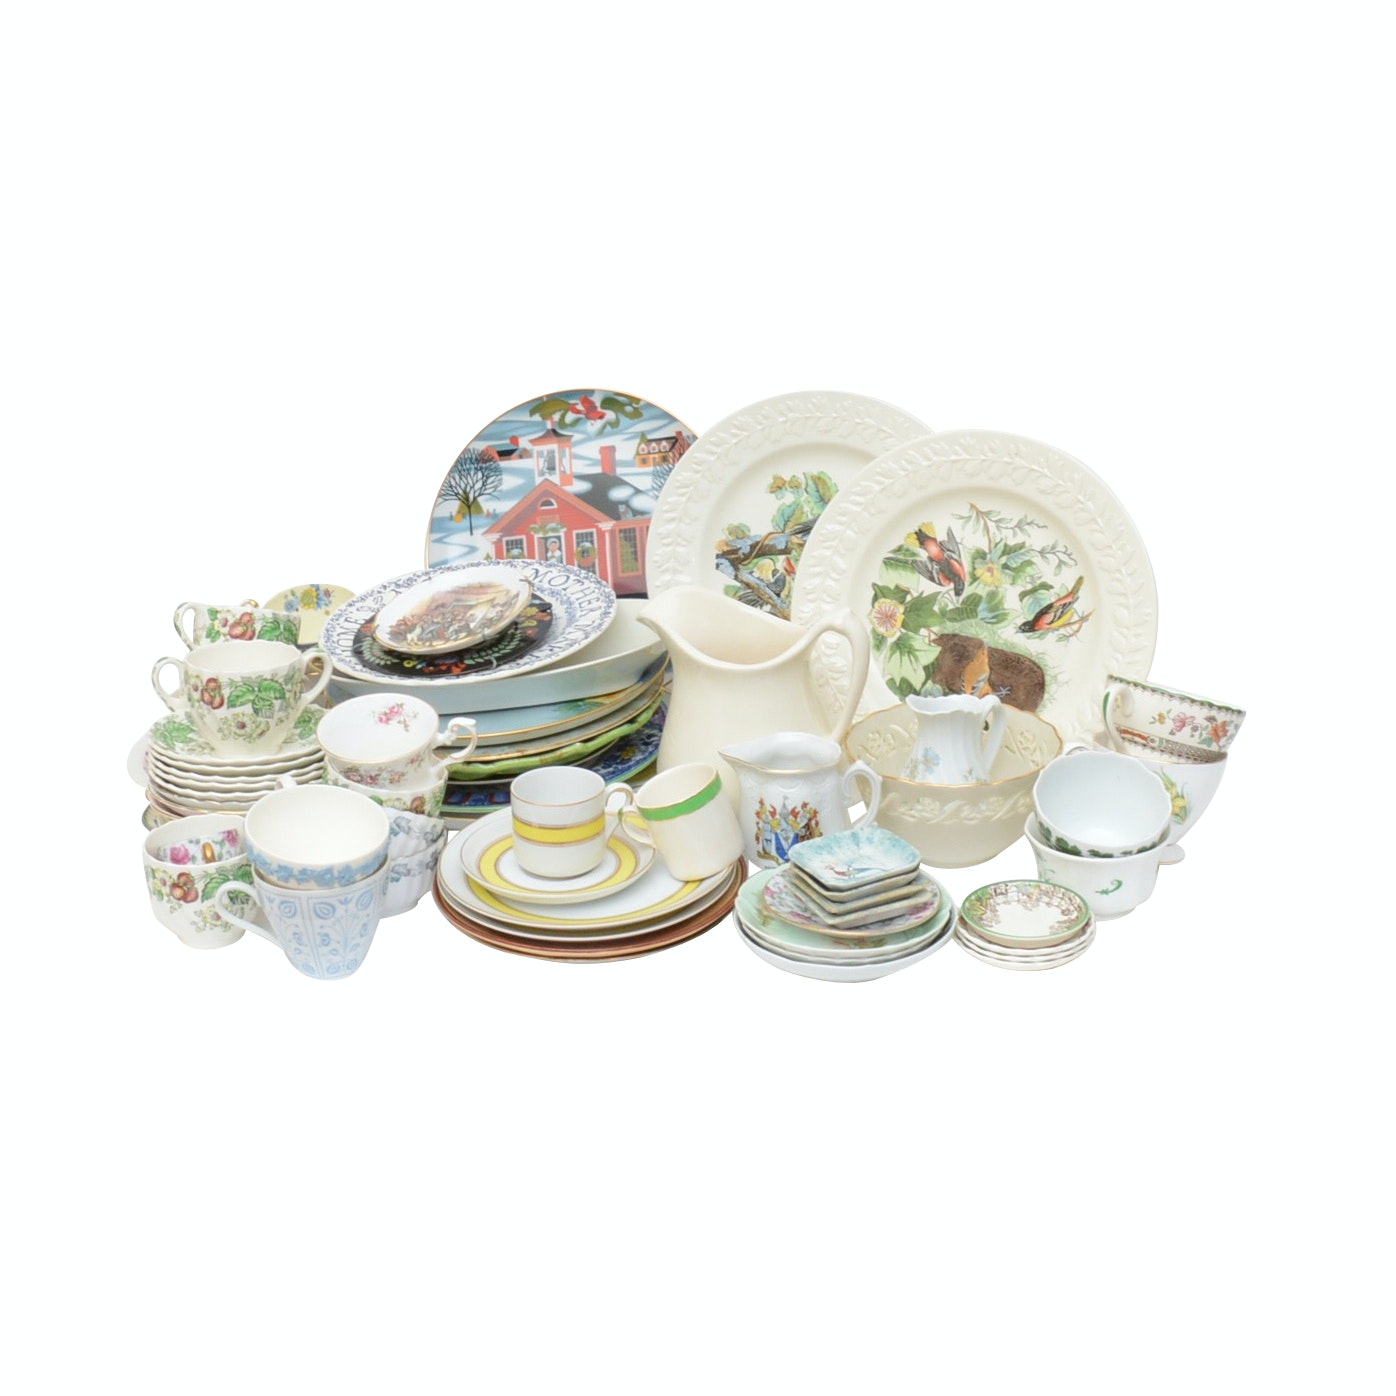 Mixed China Collection includes Spode, Haviland, Fitz & Floyd and More